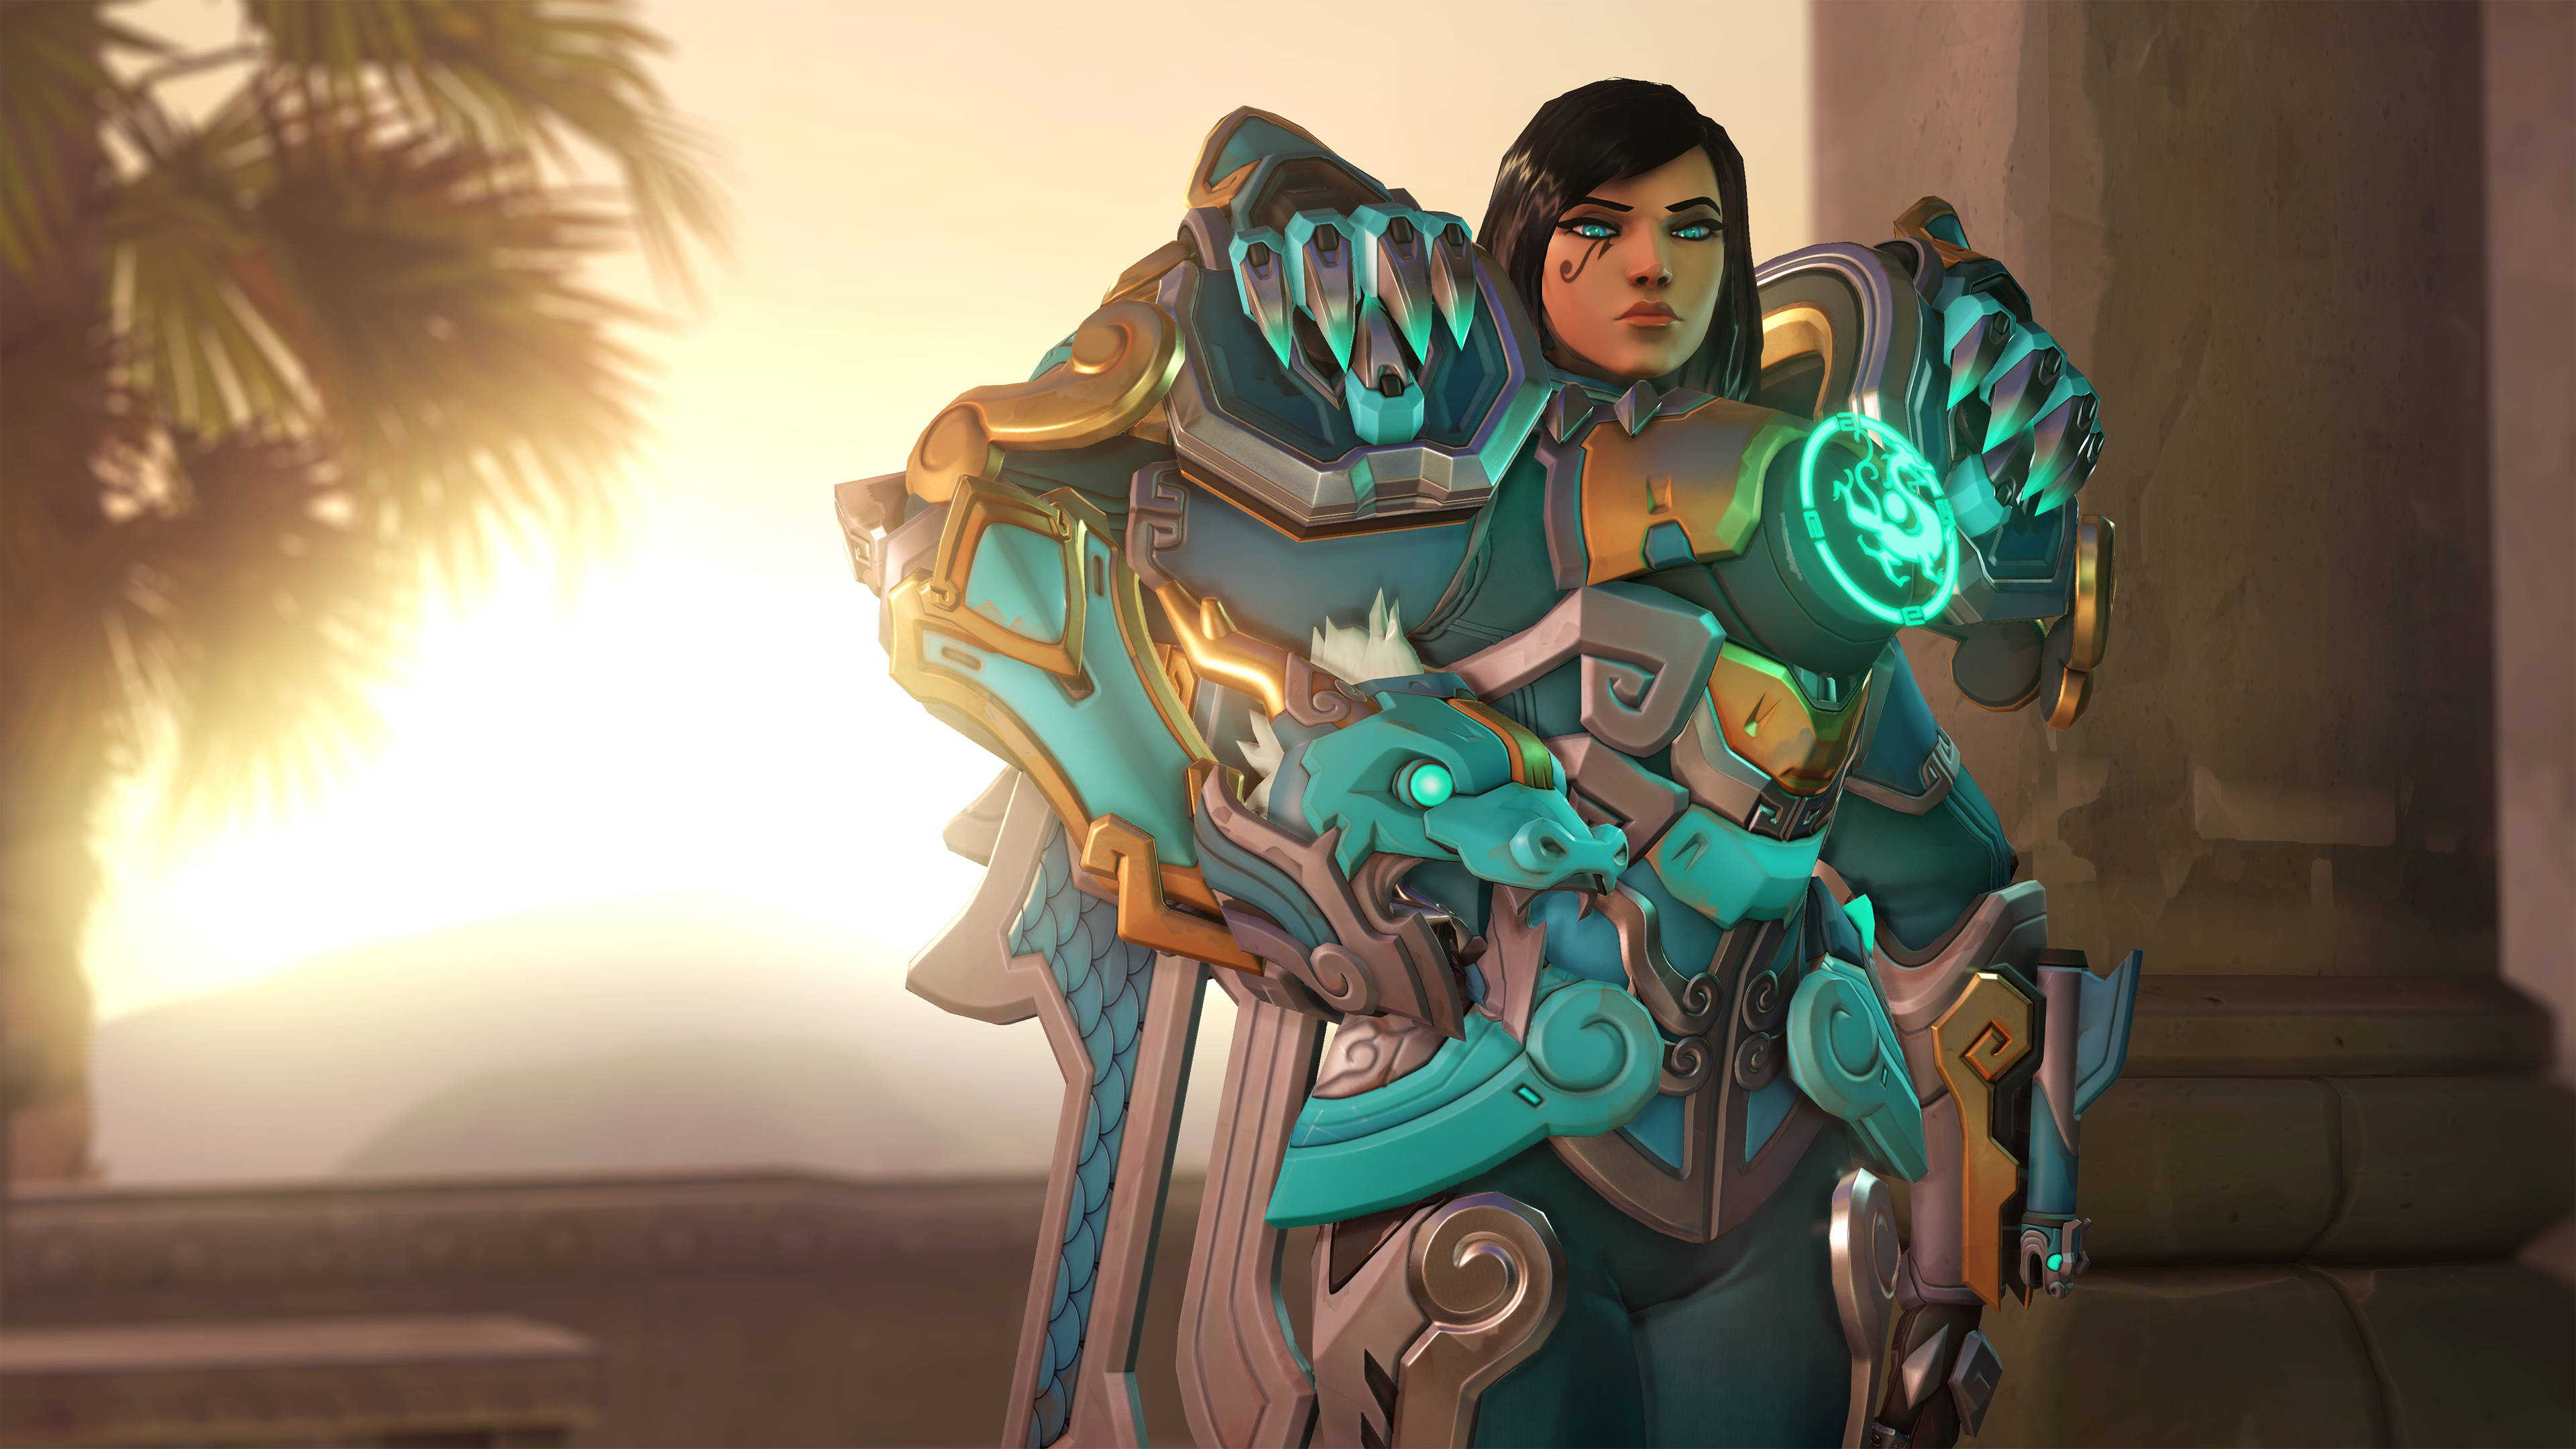 Pharah Overwatch hot pictures